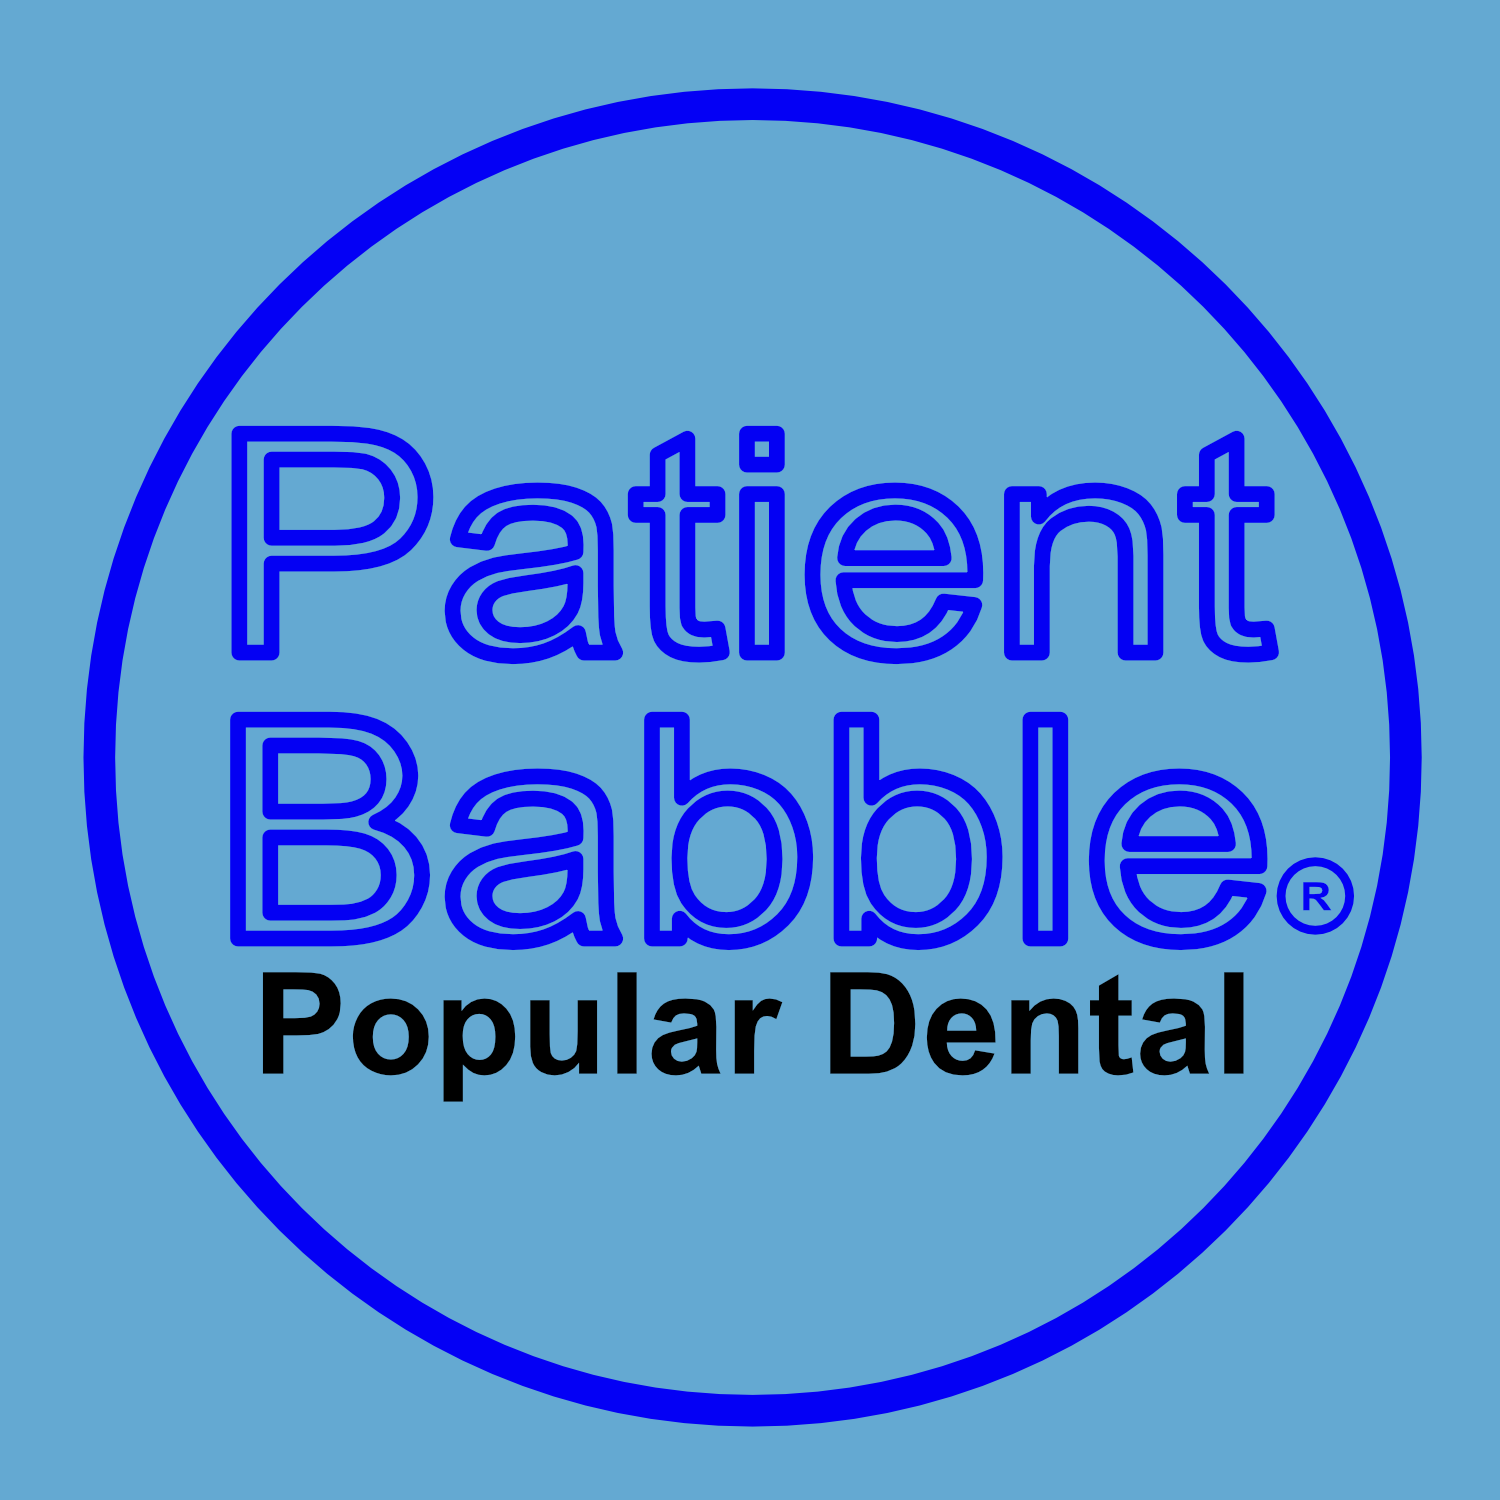 Round Patient Babble Popular Dental.png